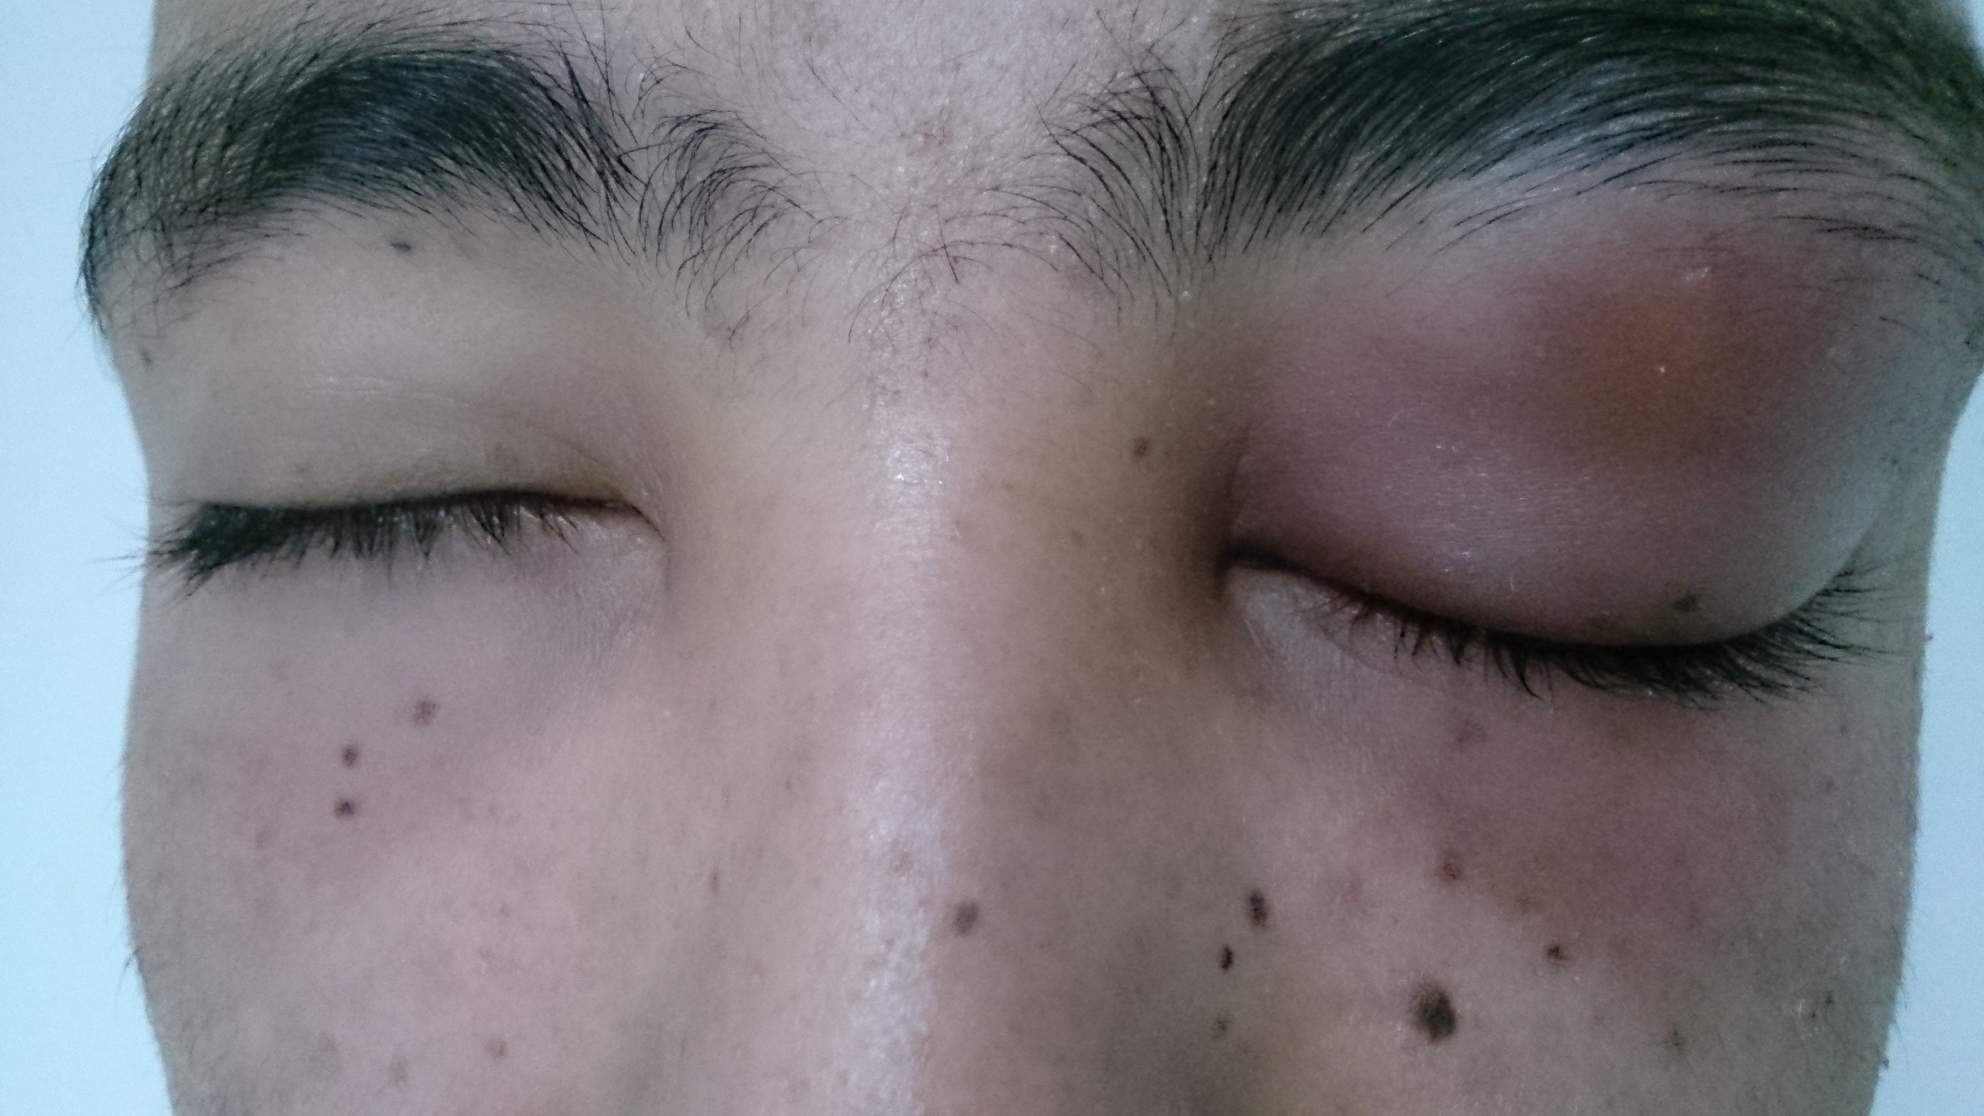 eye swollen infection pink eye cellulitis periorbital preseptal